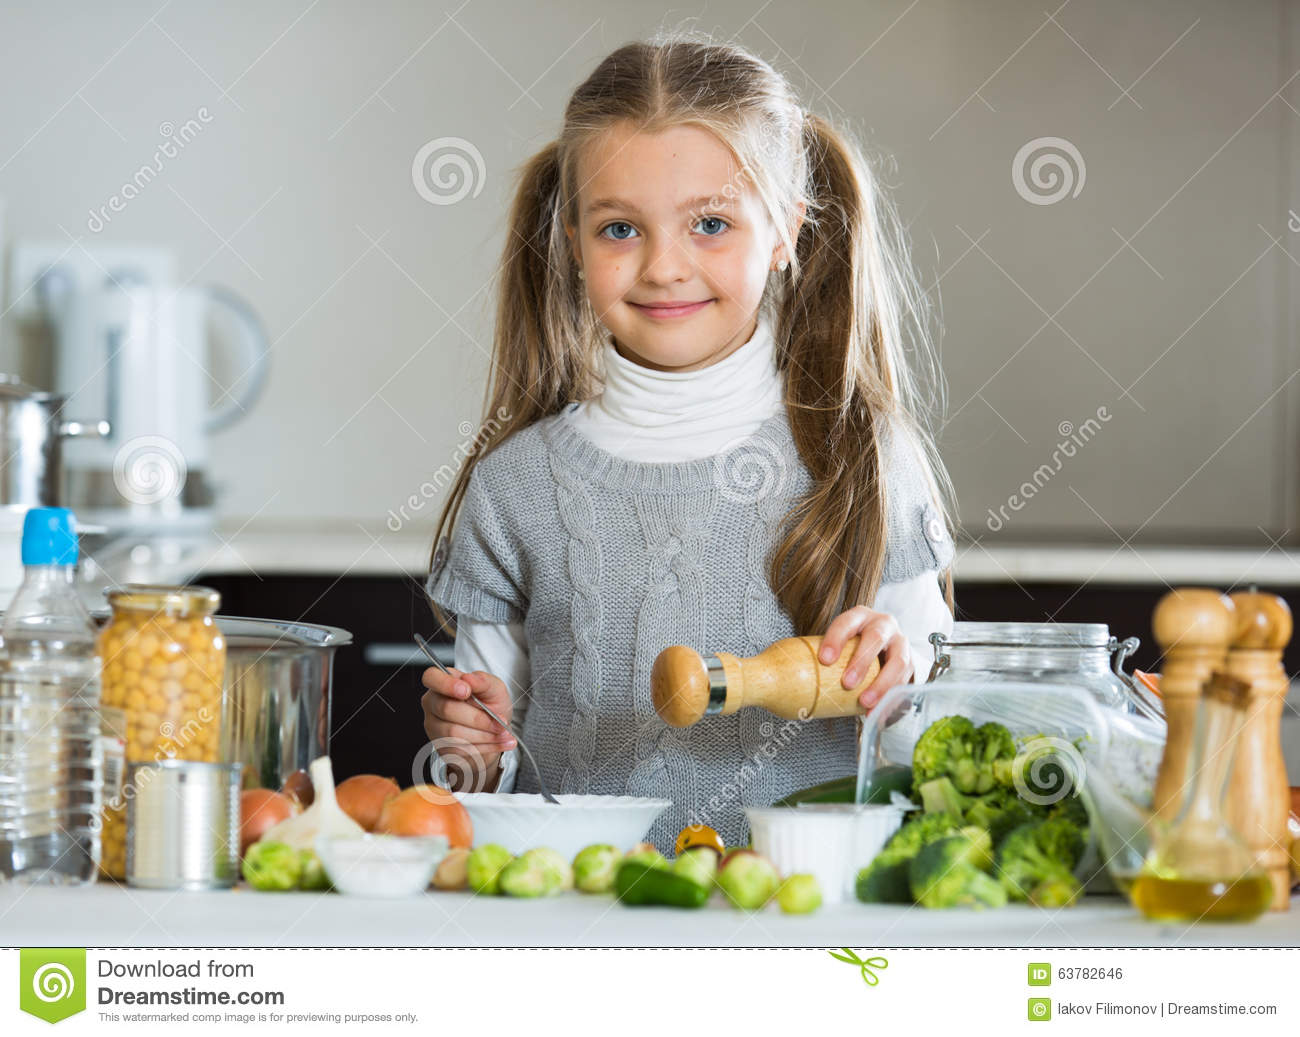 petite fille mignonne faisant cuire des veggies dans la cuisine photo stock image du p trole. Black Bedroom Furniture Sets. Home Design Ideas